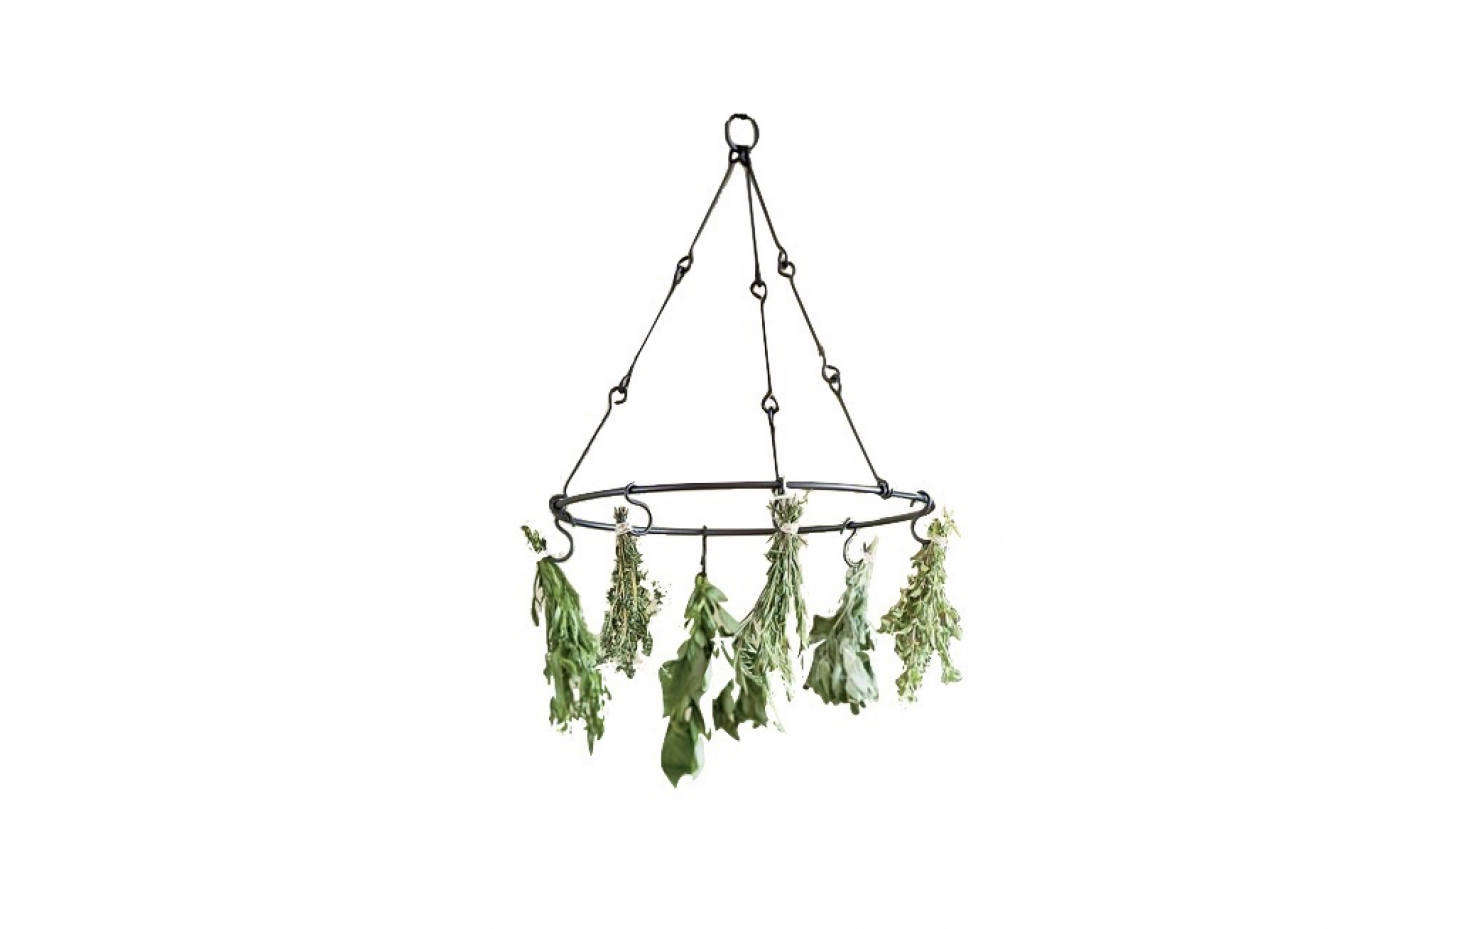 10 Easy Pieces Herb Drying Racks